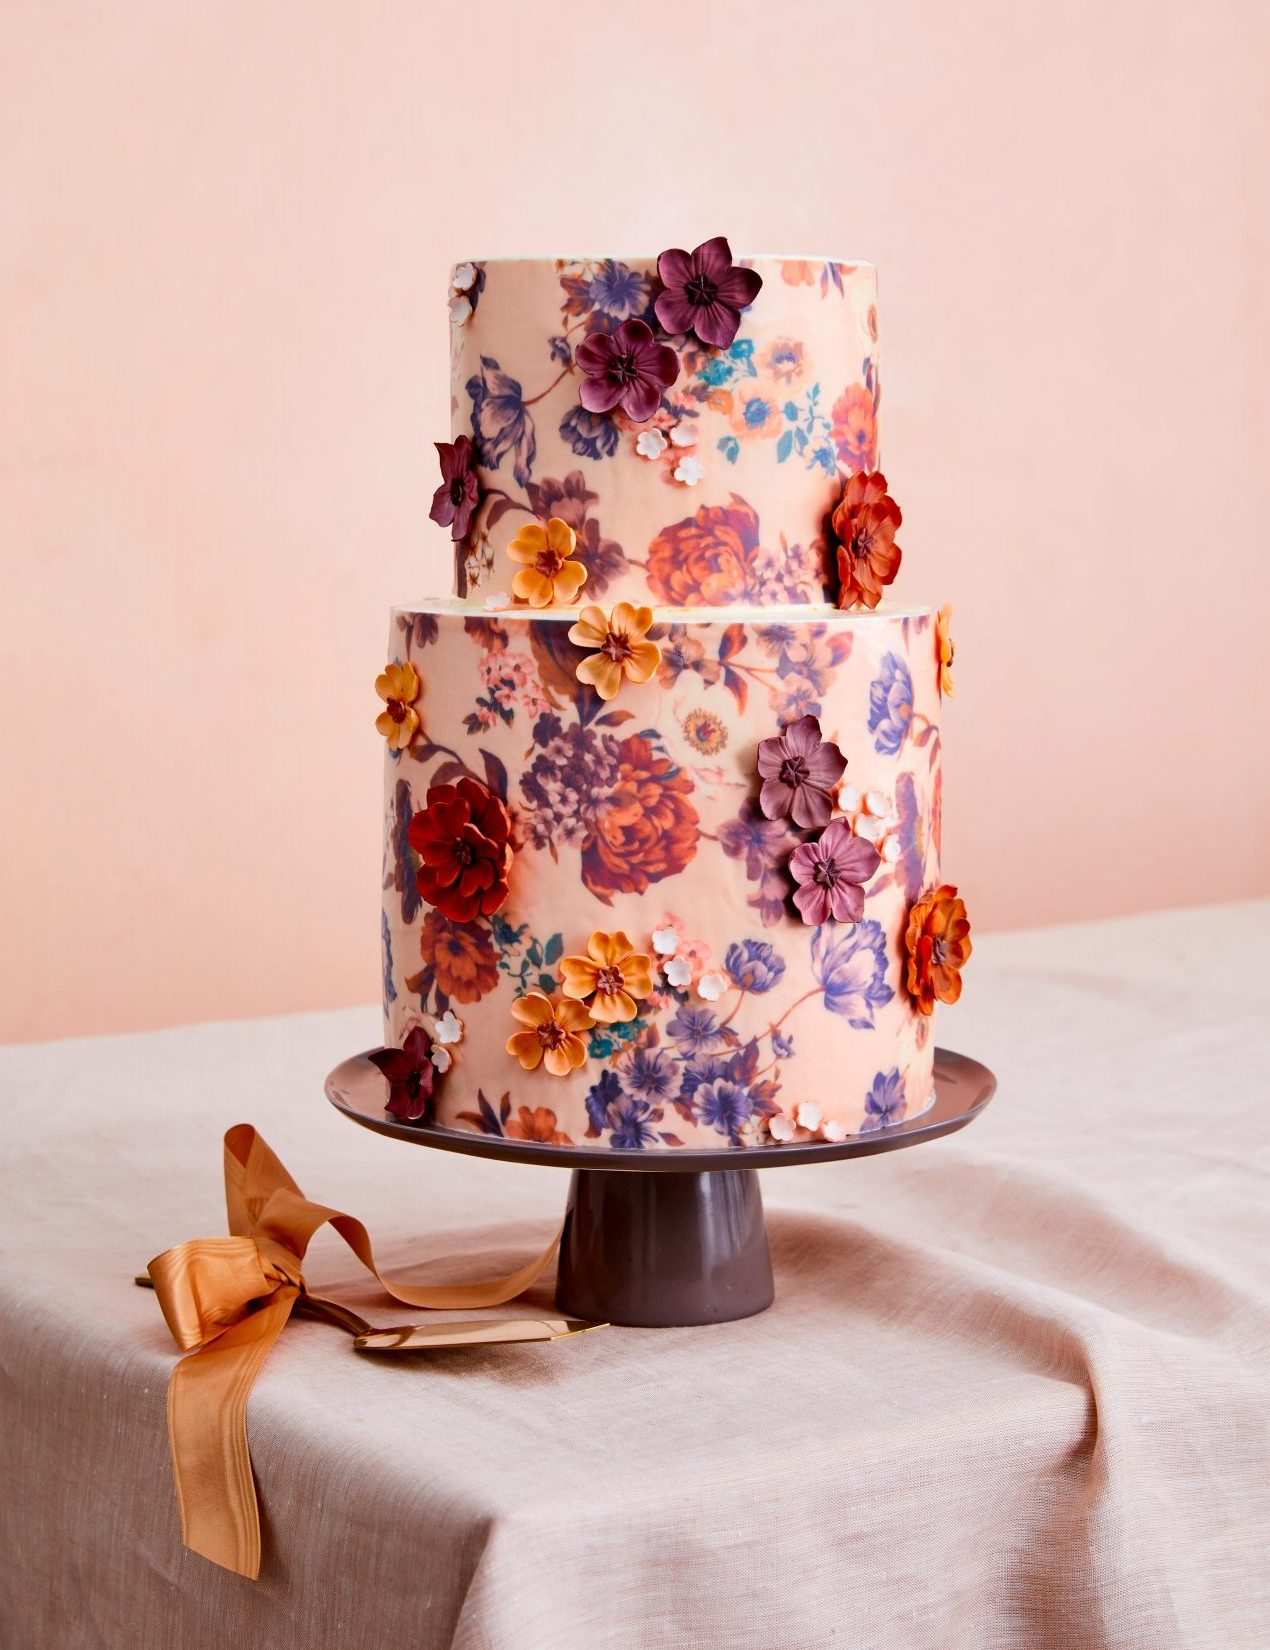 Simple Wedding Cakes With Exquisite Embellishment That You Or